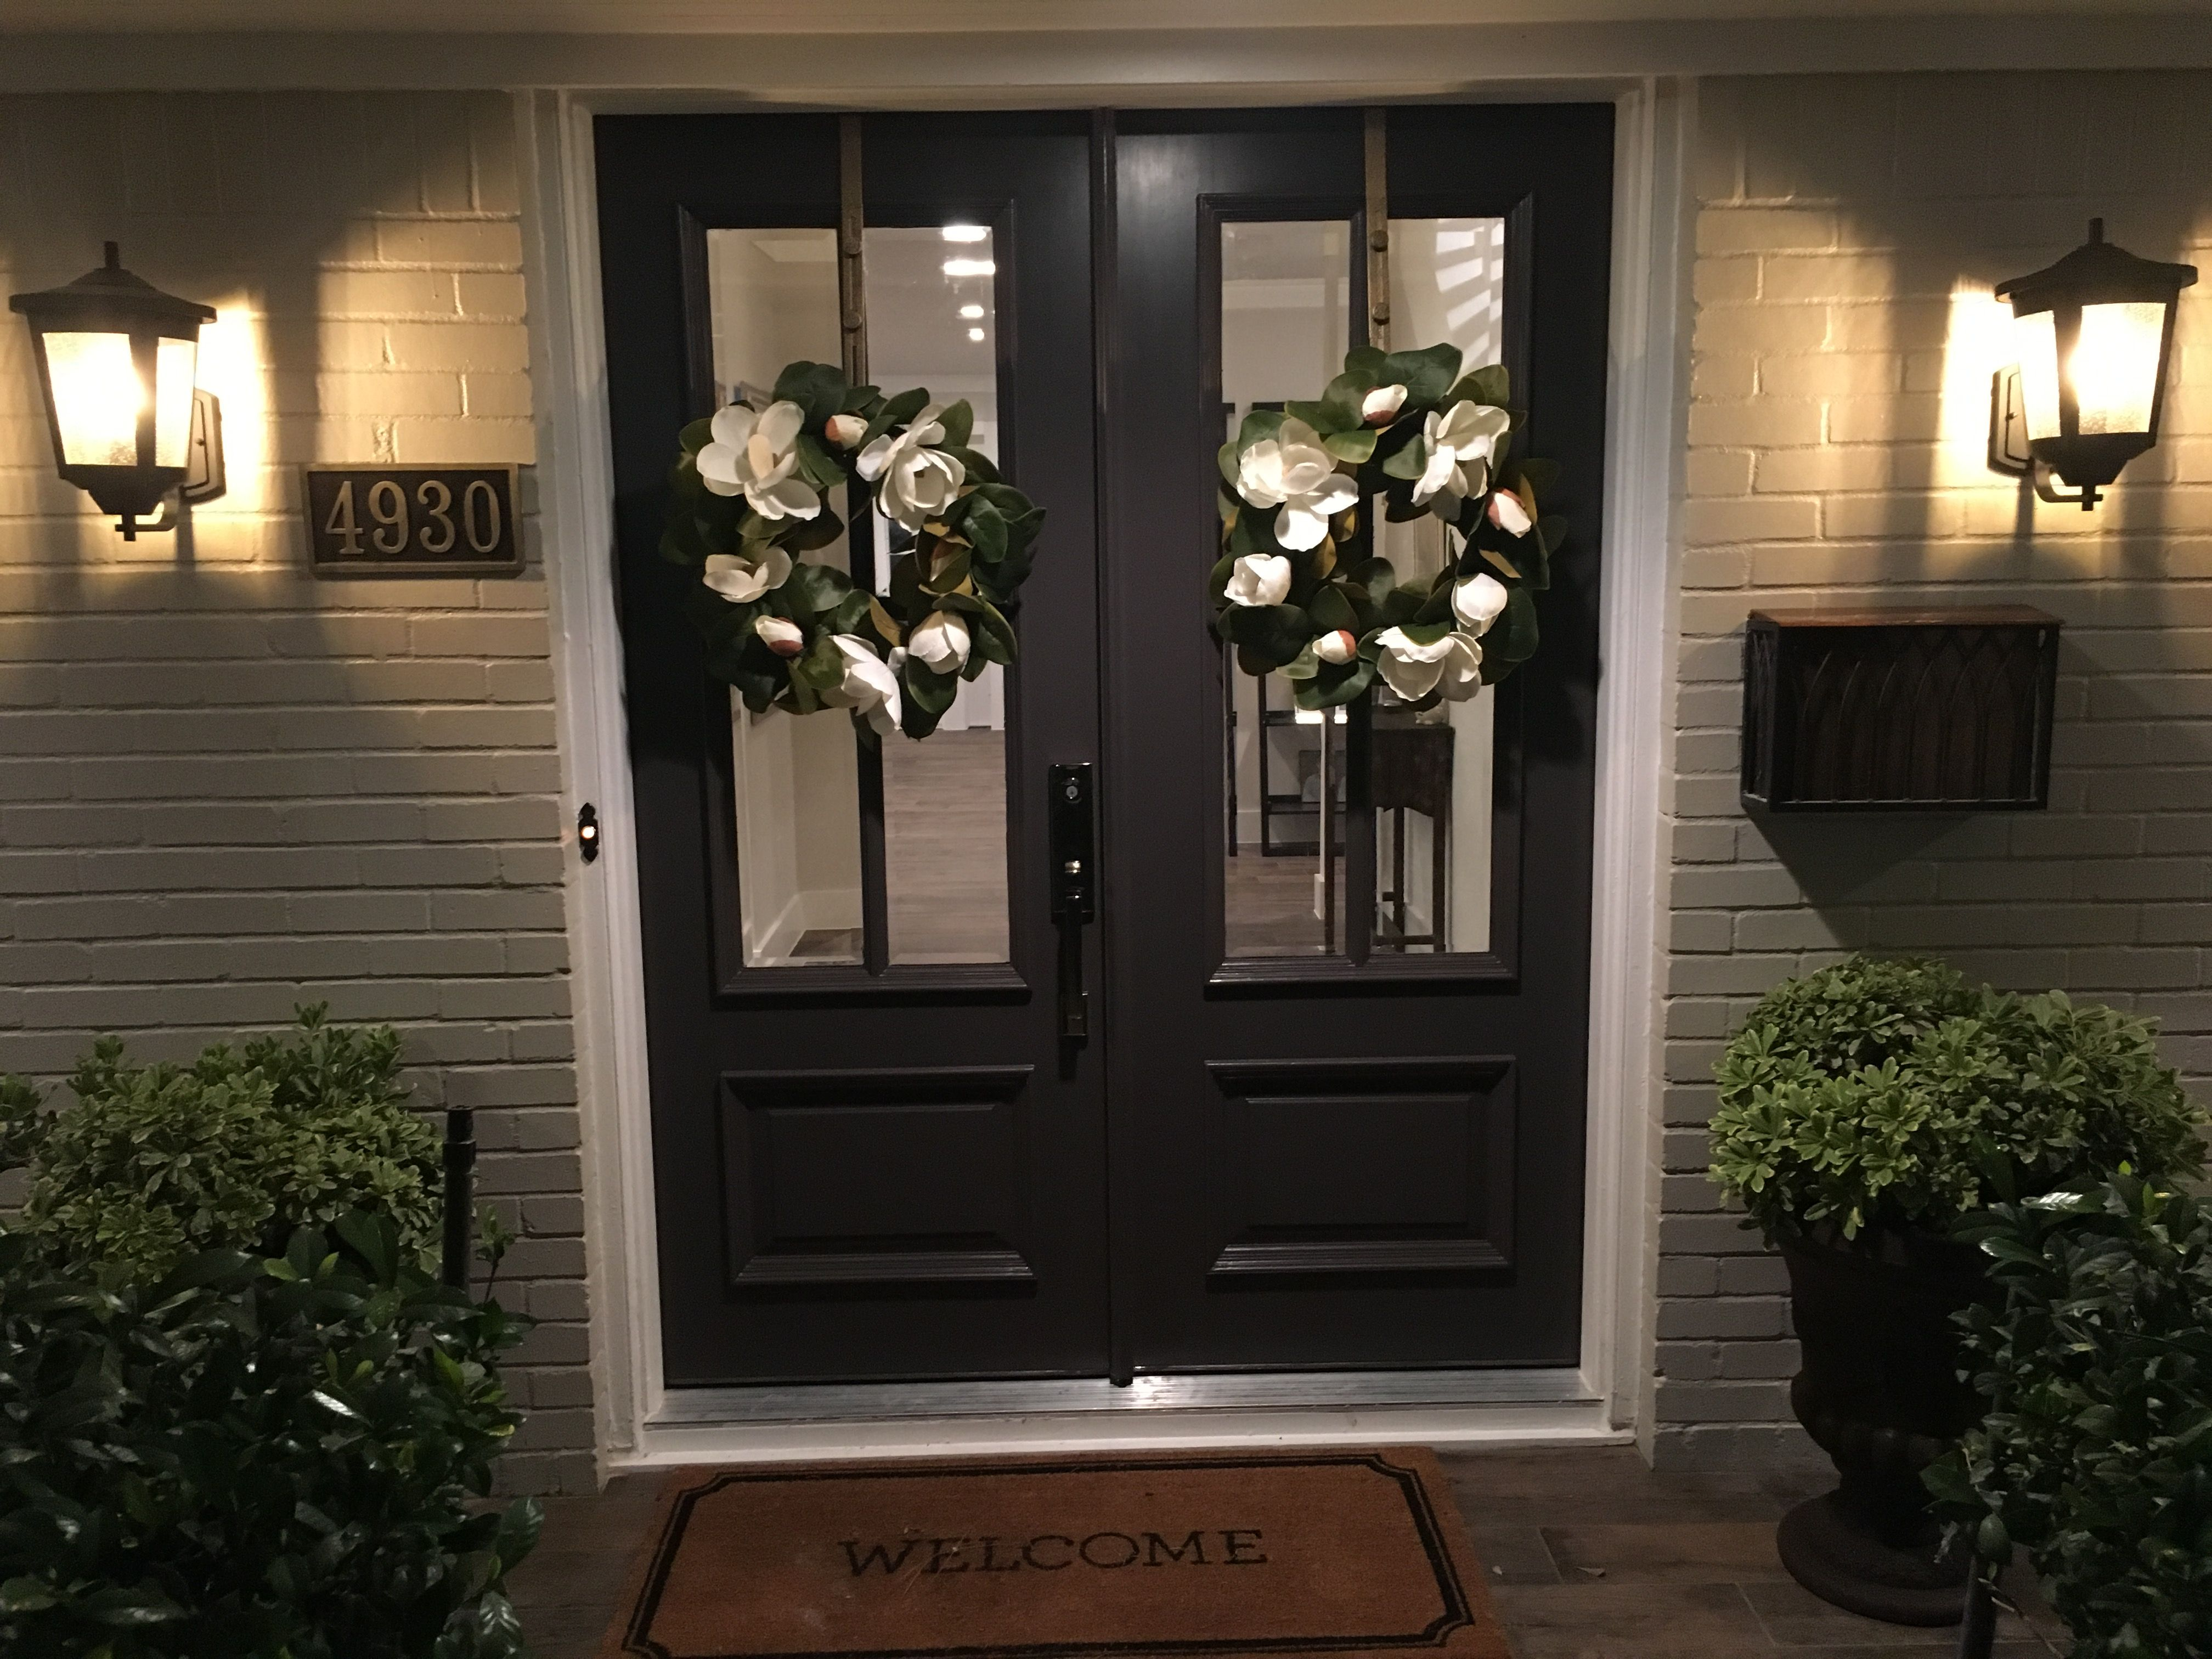 Modern farmhouse double front doors Benjamin Moore Iron Mountain